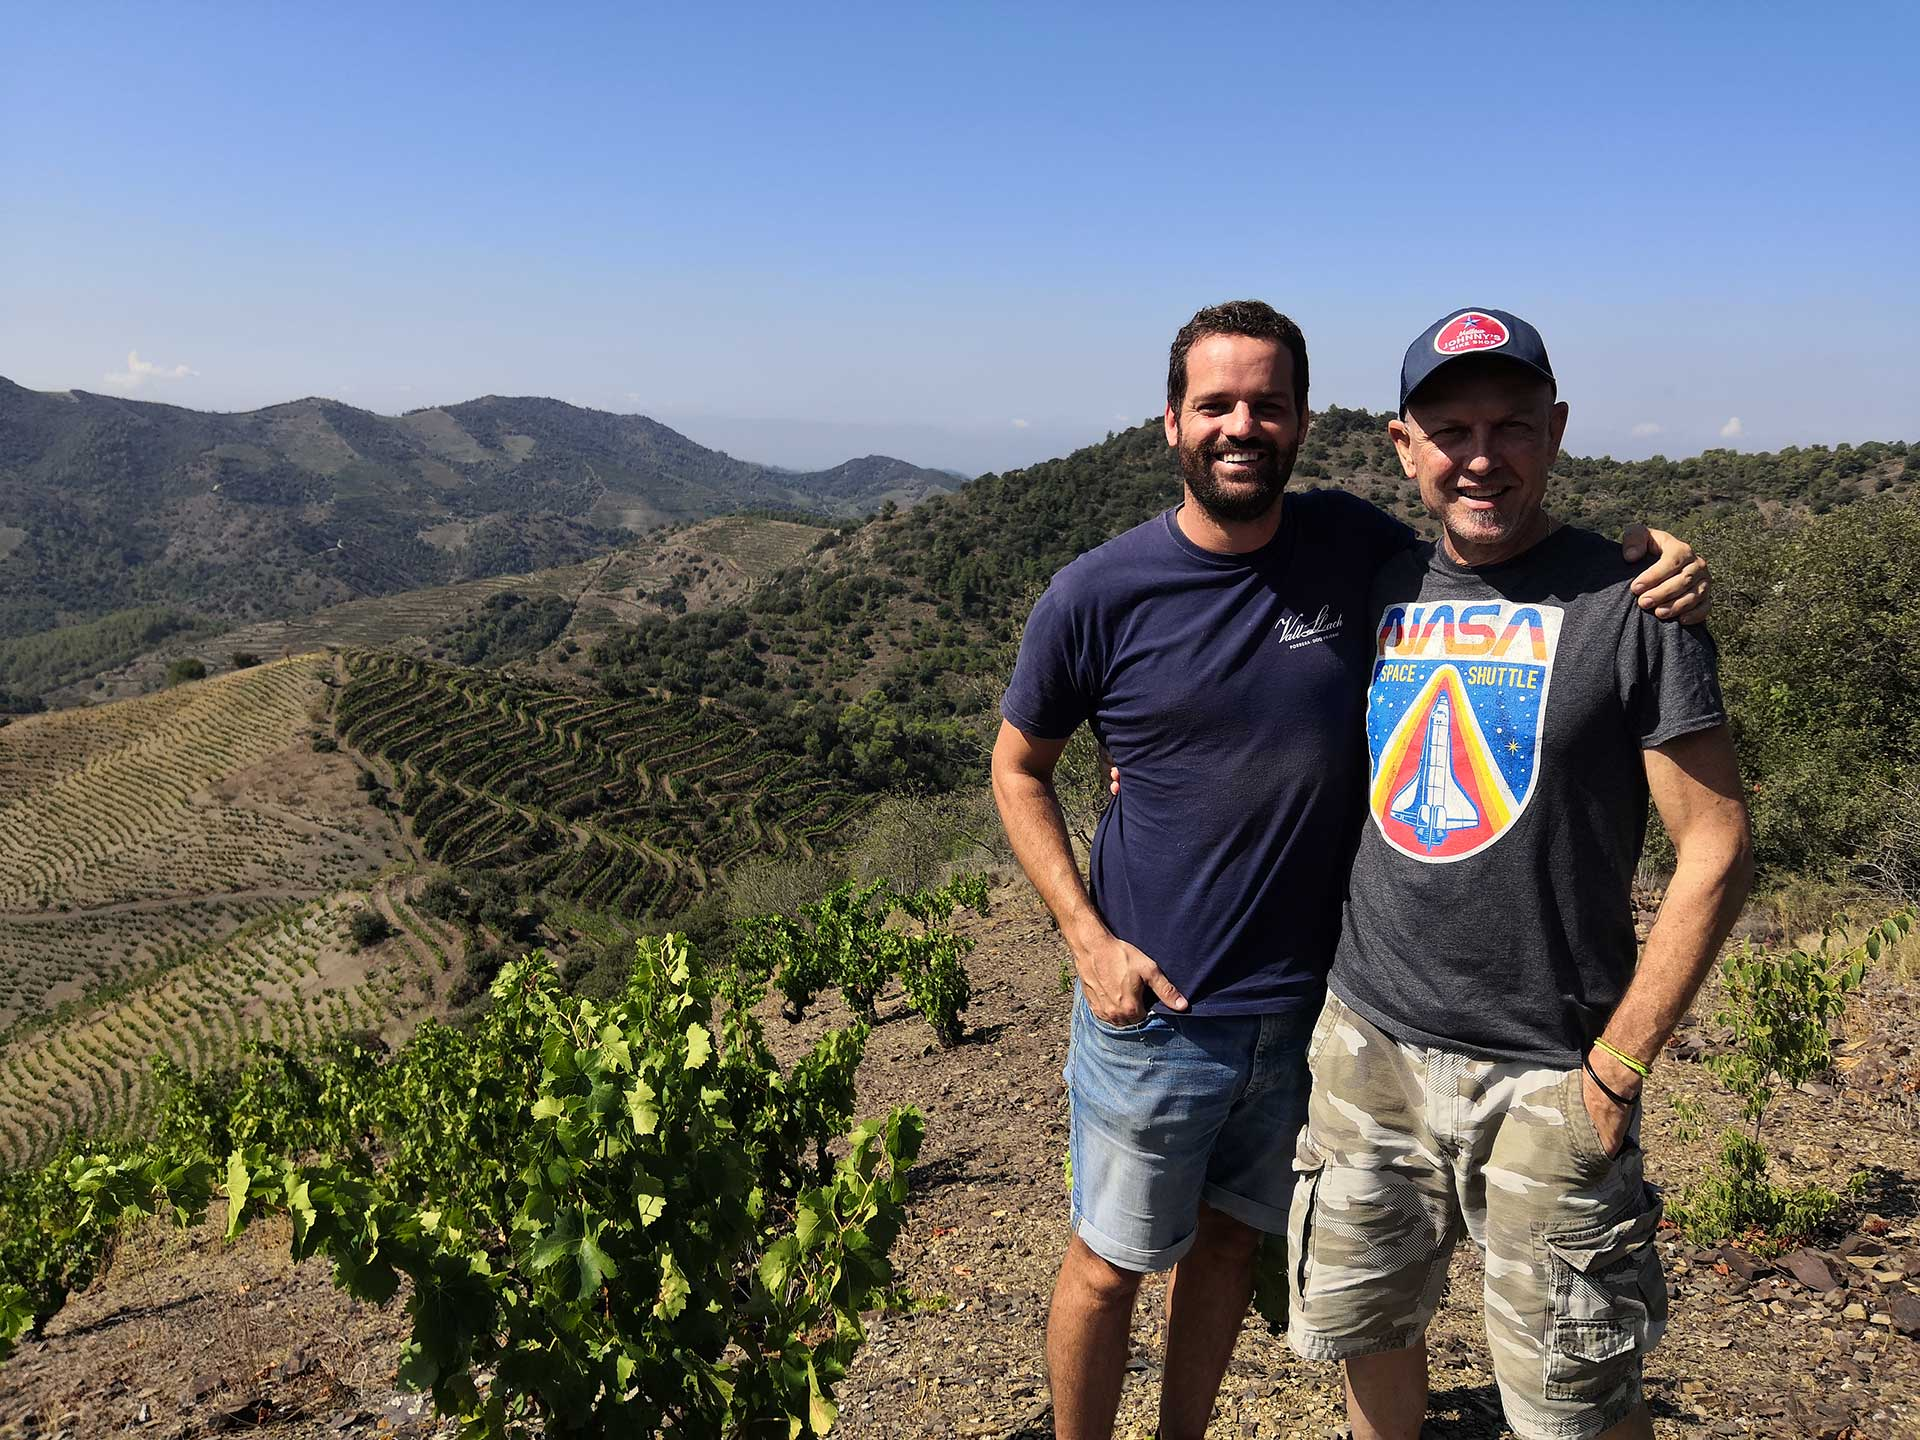 Priorat vineyars